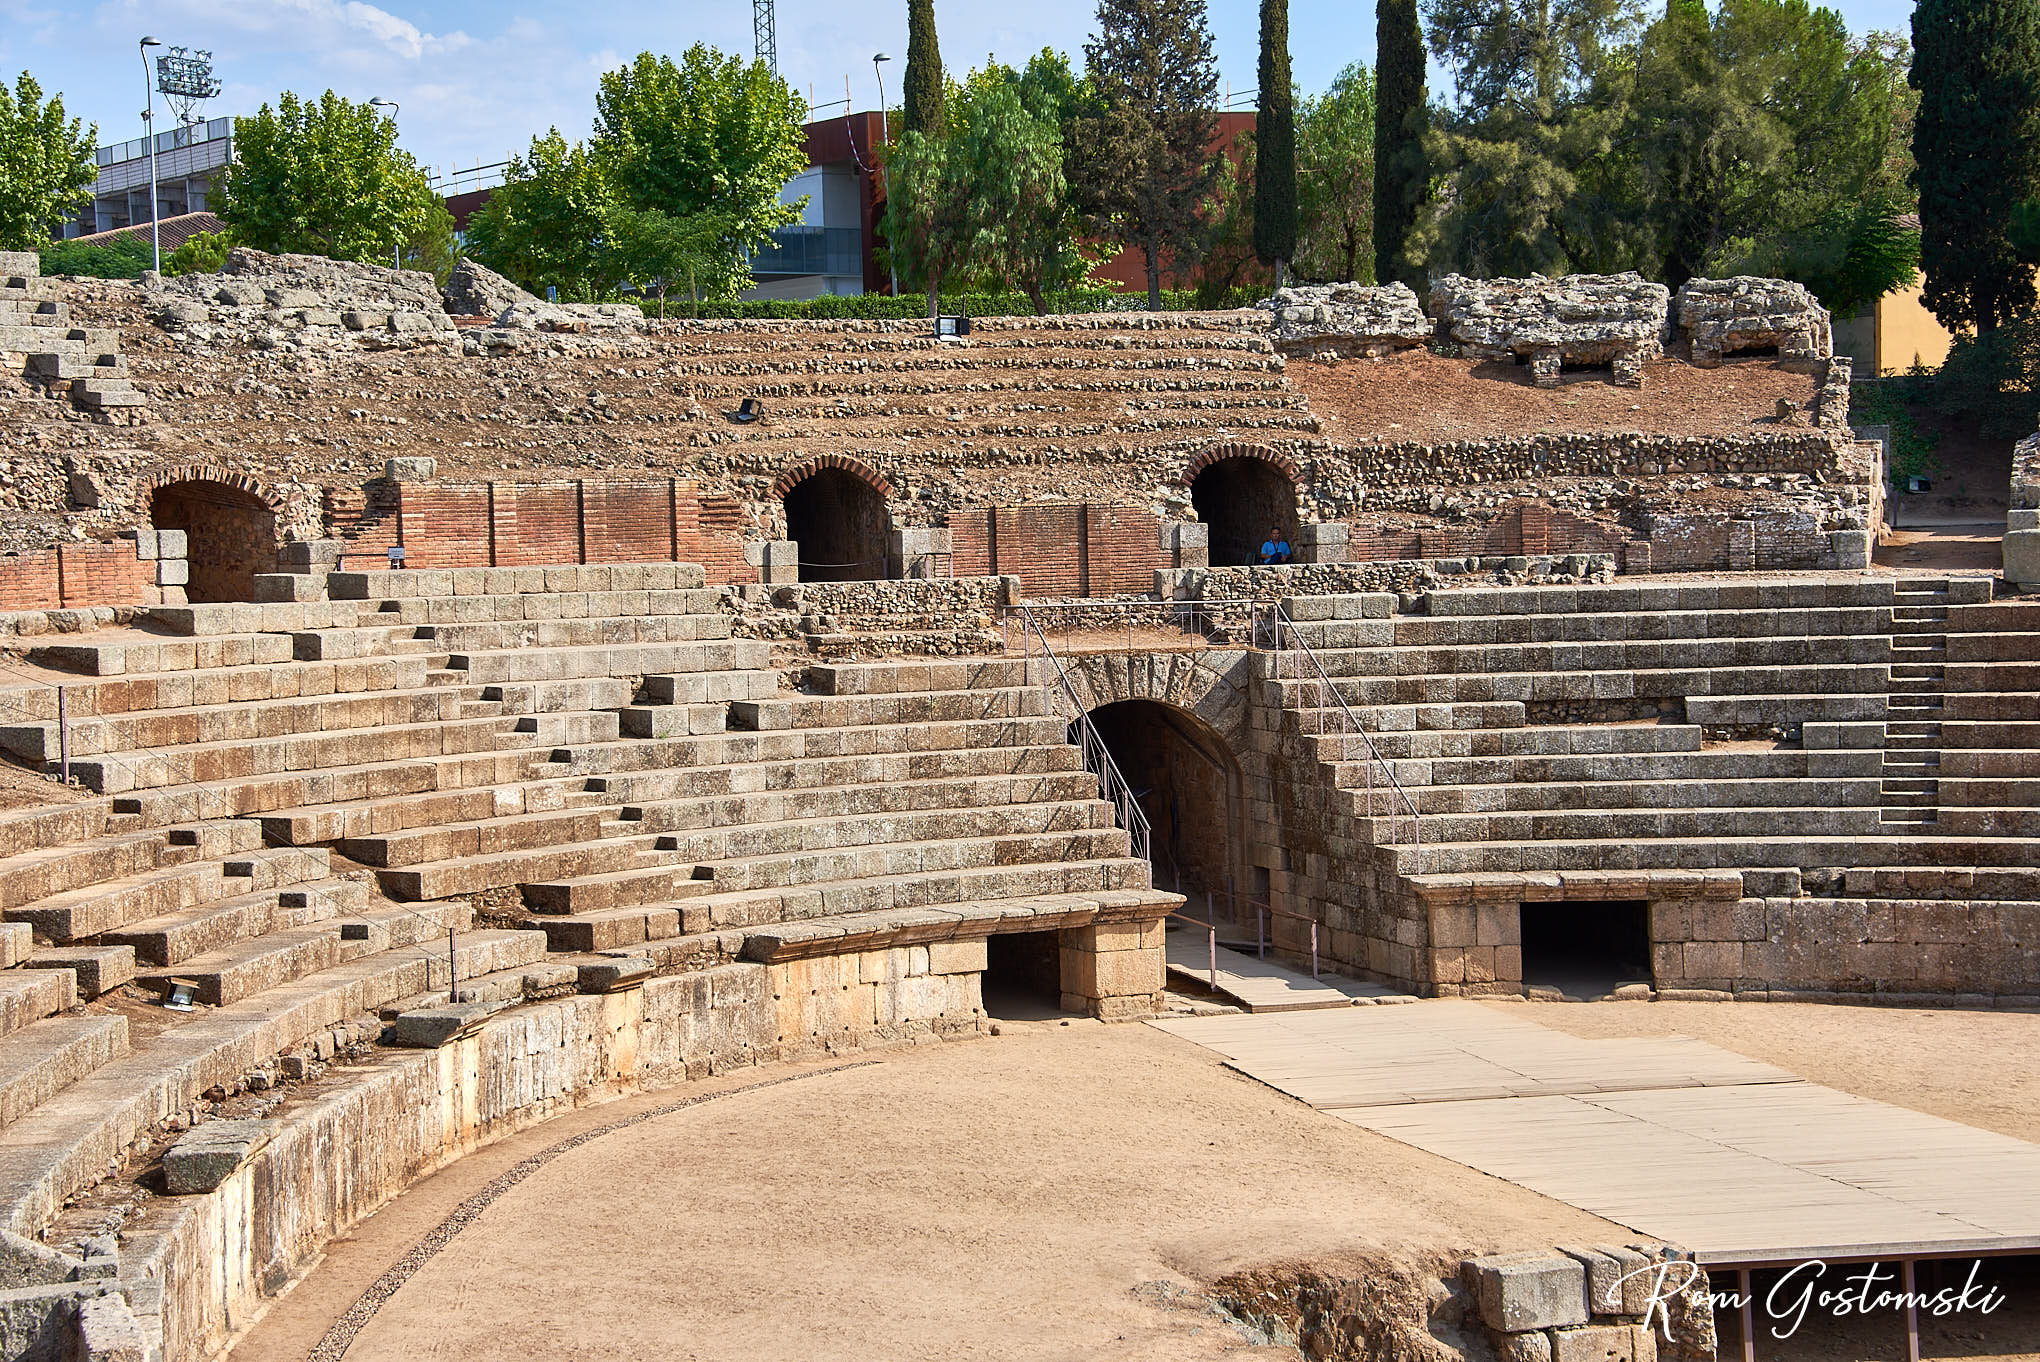 The Roman Amphitheatre - one of the impessive archaeological heritage sites of Mérida